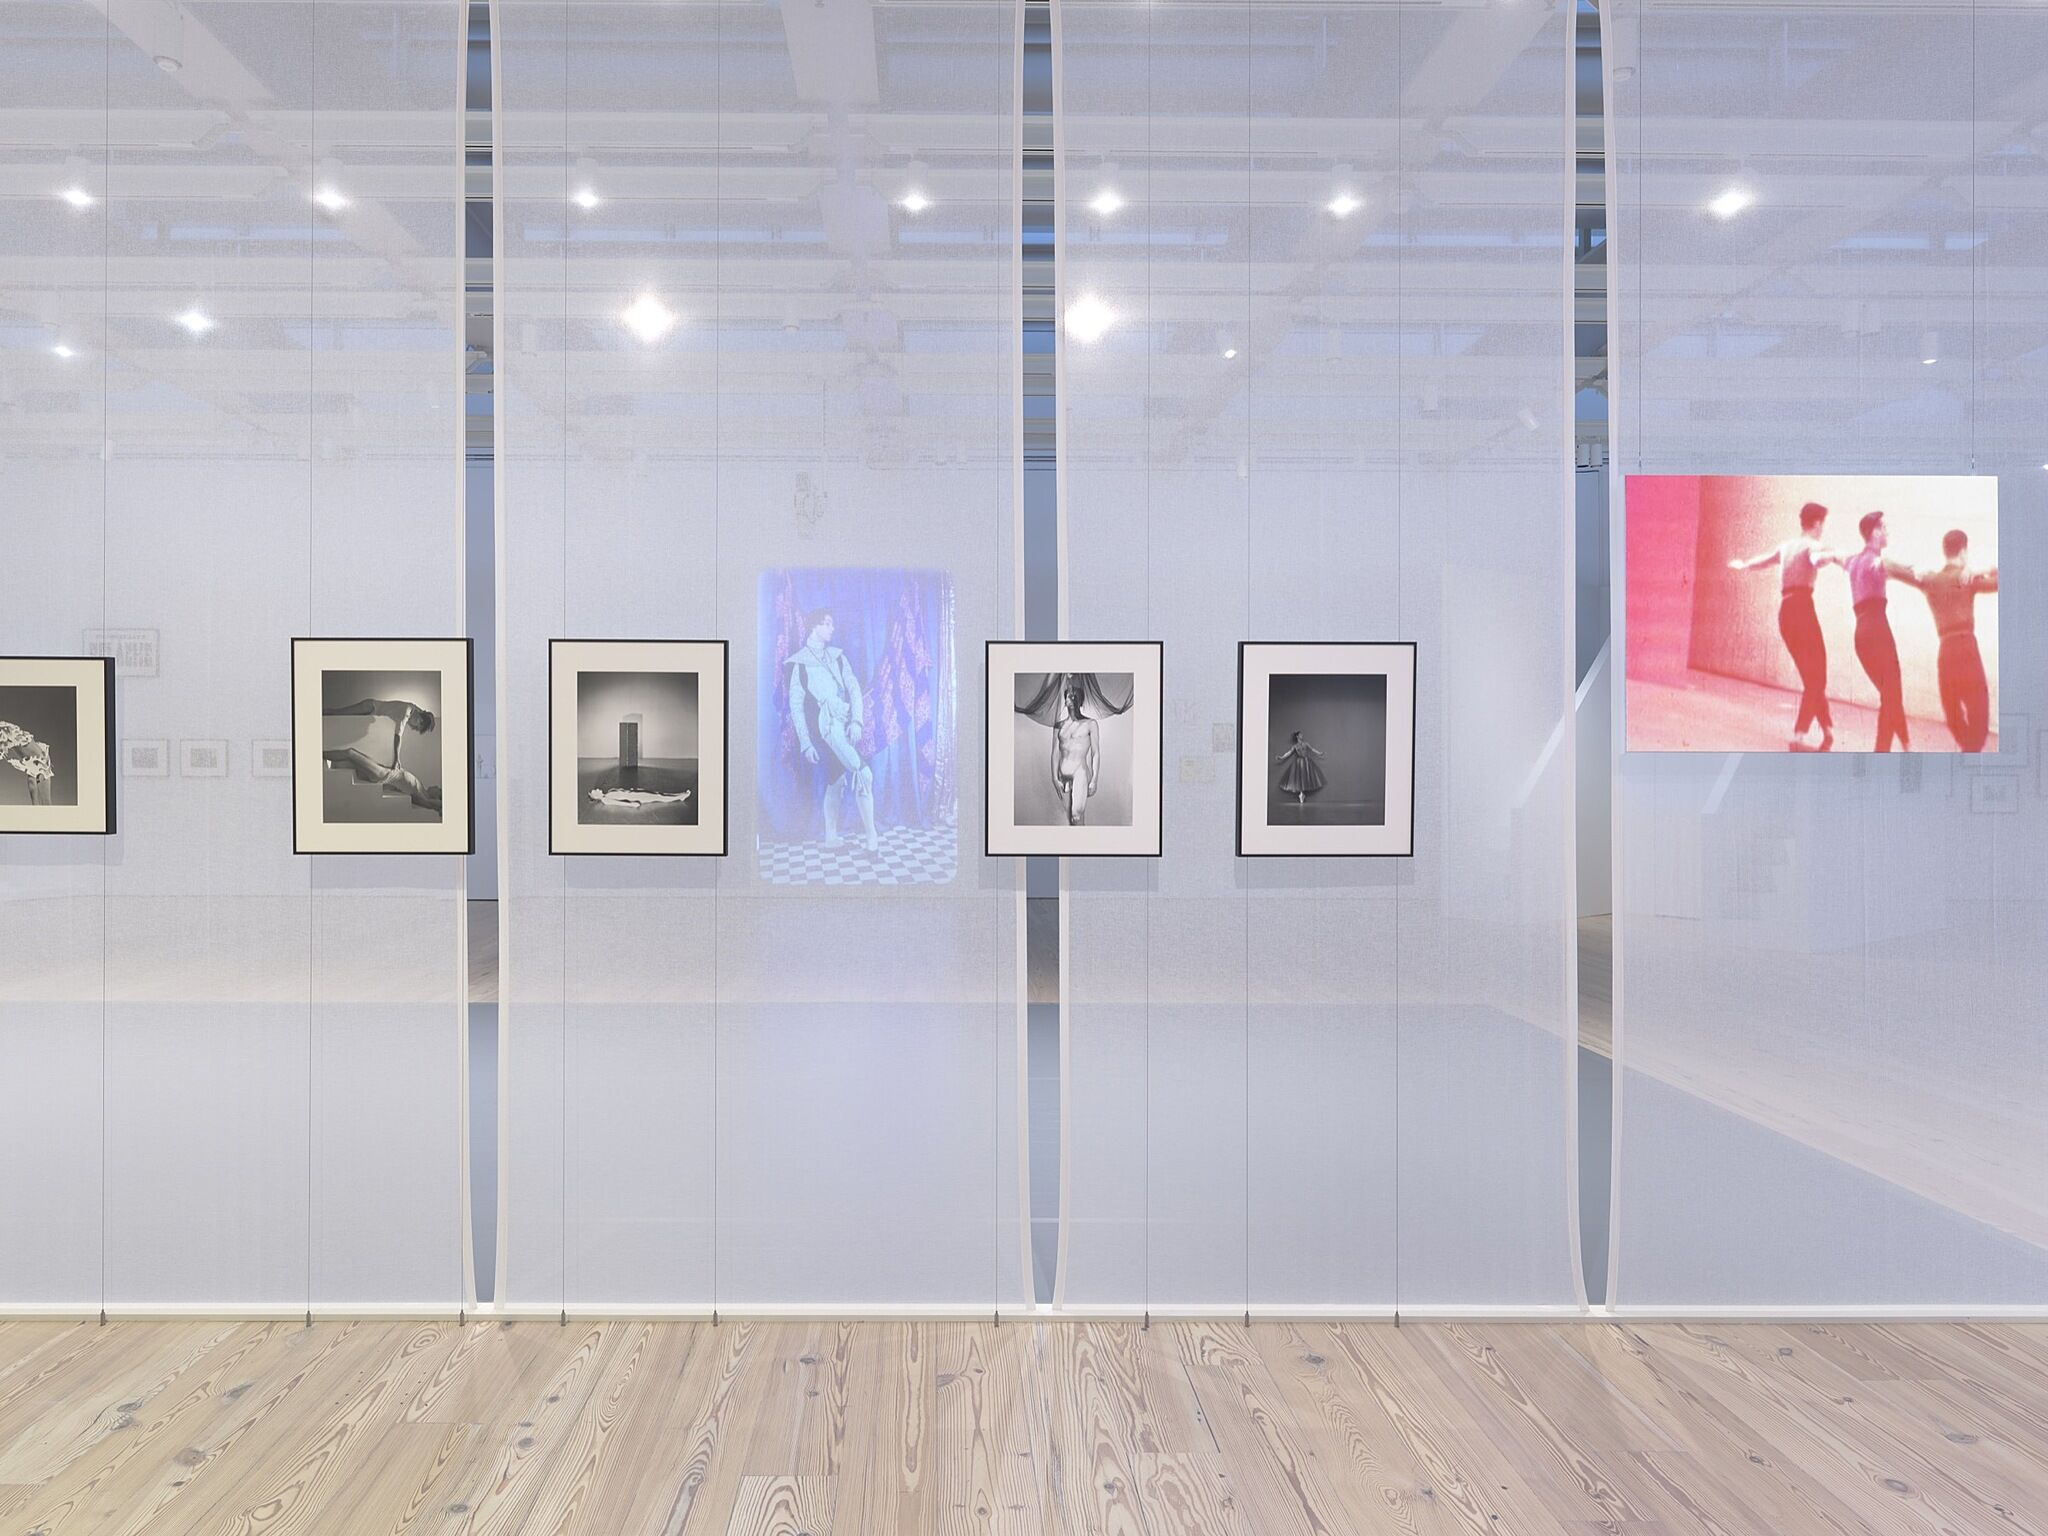 A photo of the Whitney galleries with various photos and videos on the wall.